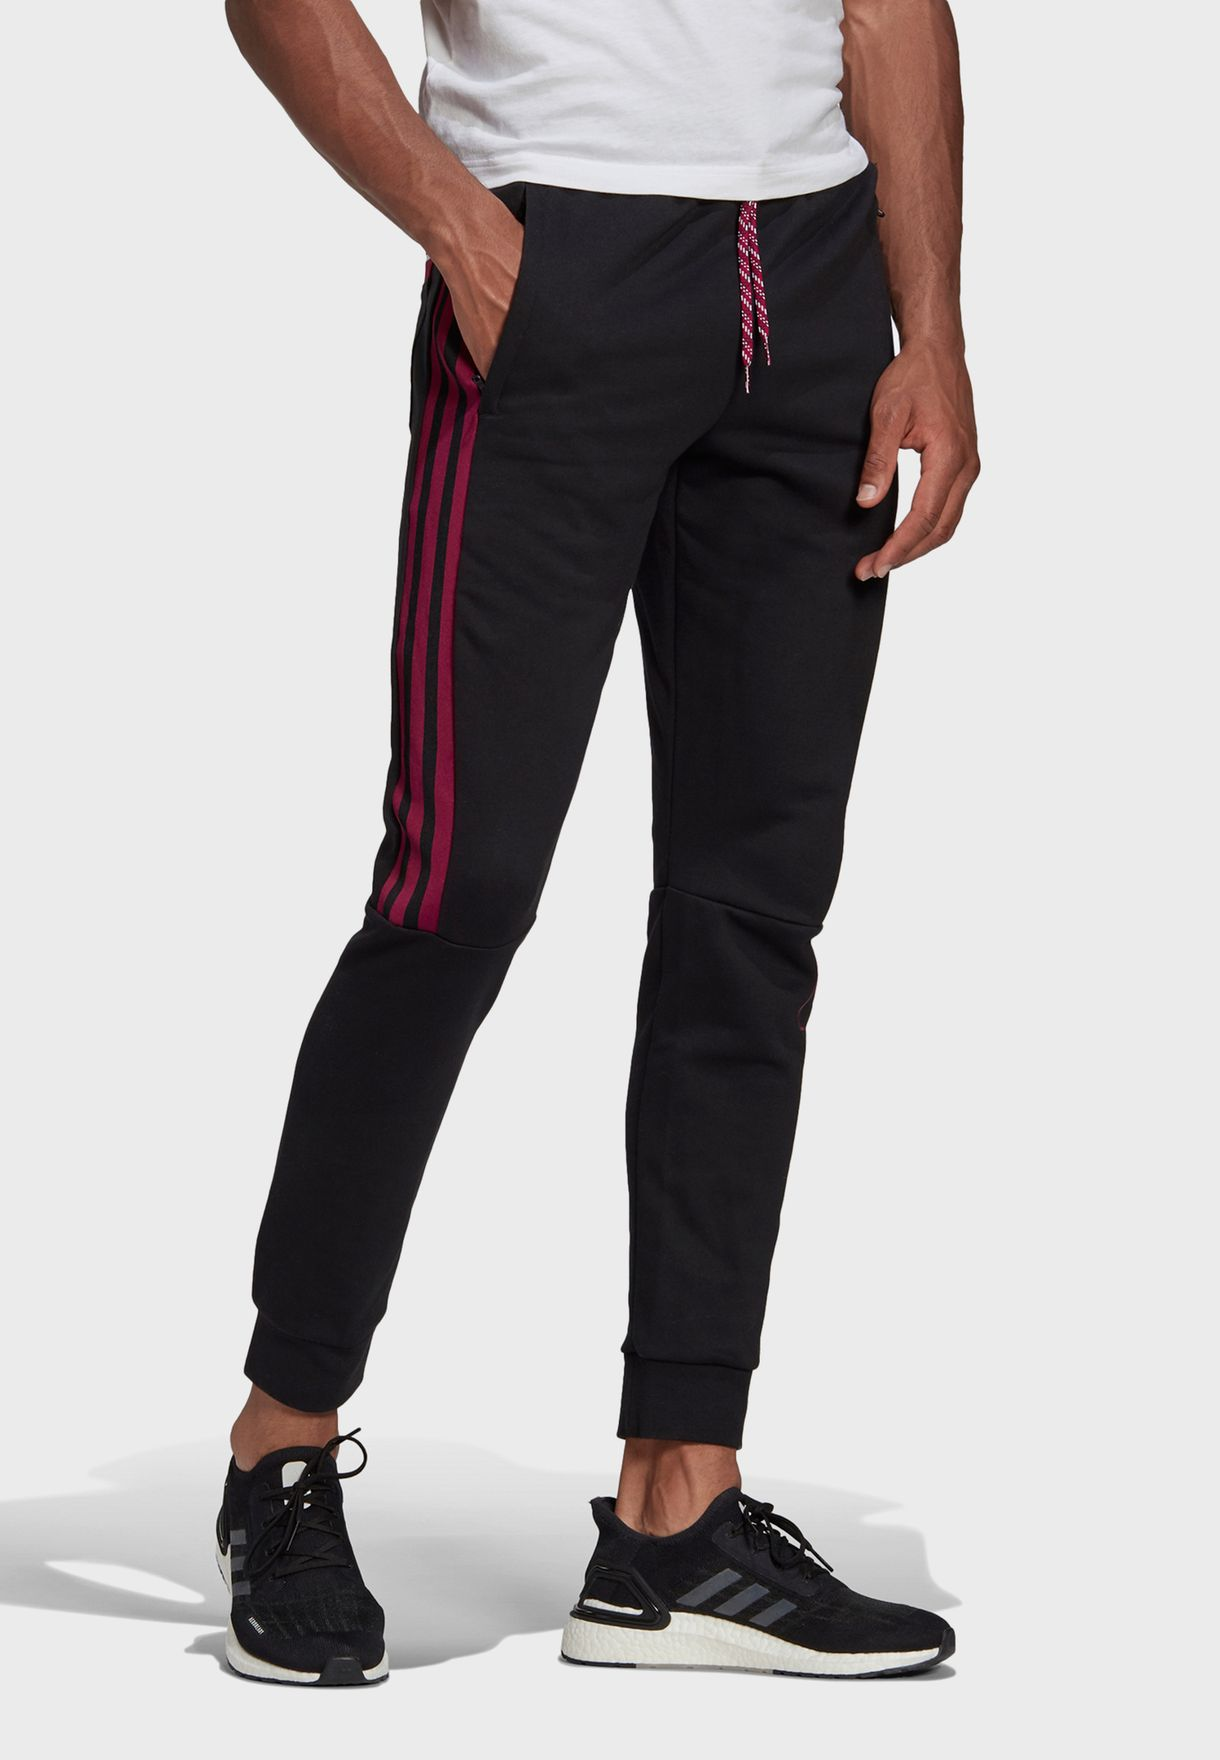 Must Have 3 Stripe Tape Sweatpants